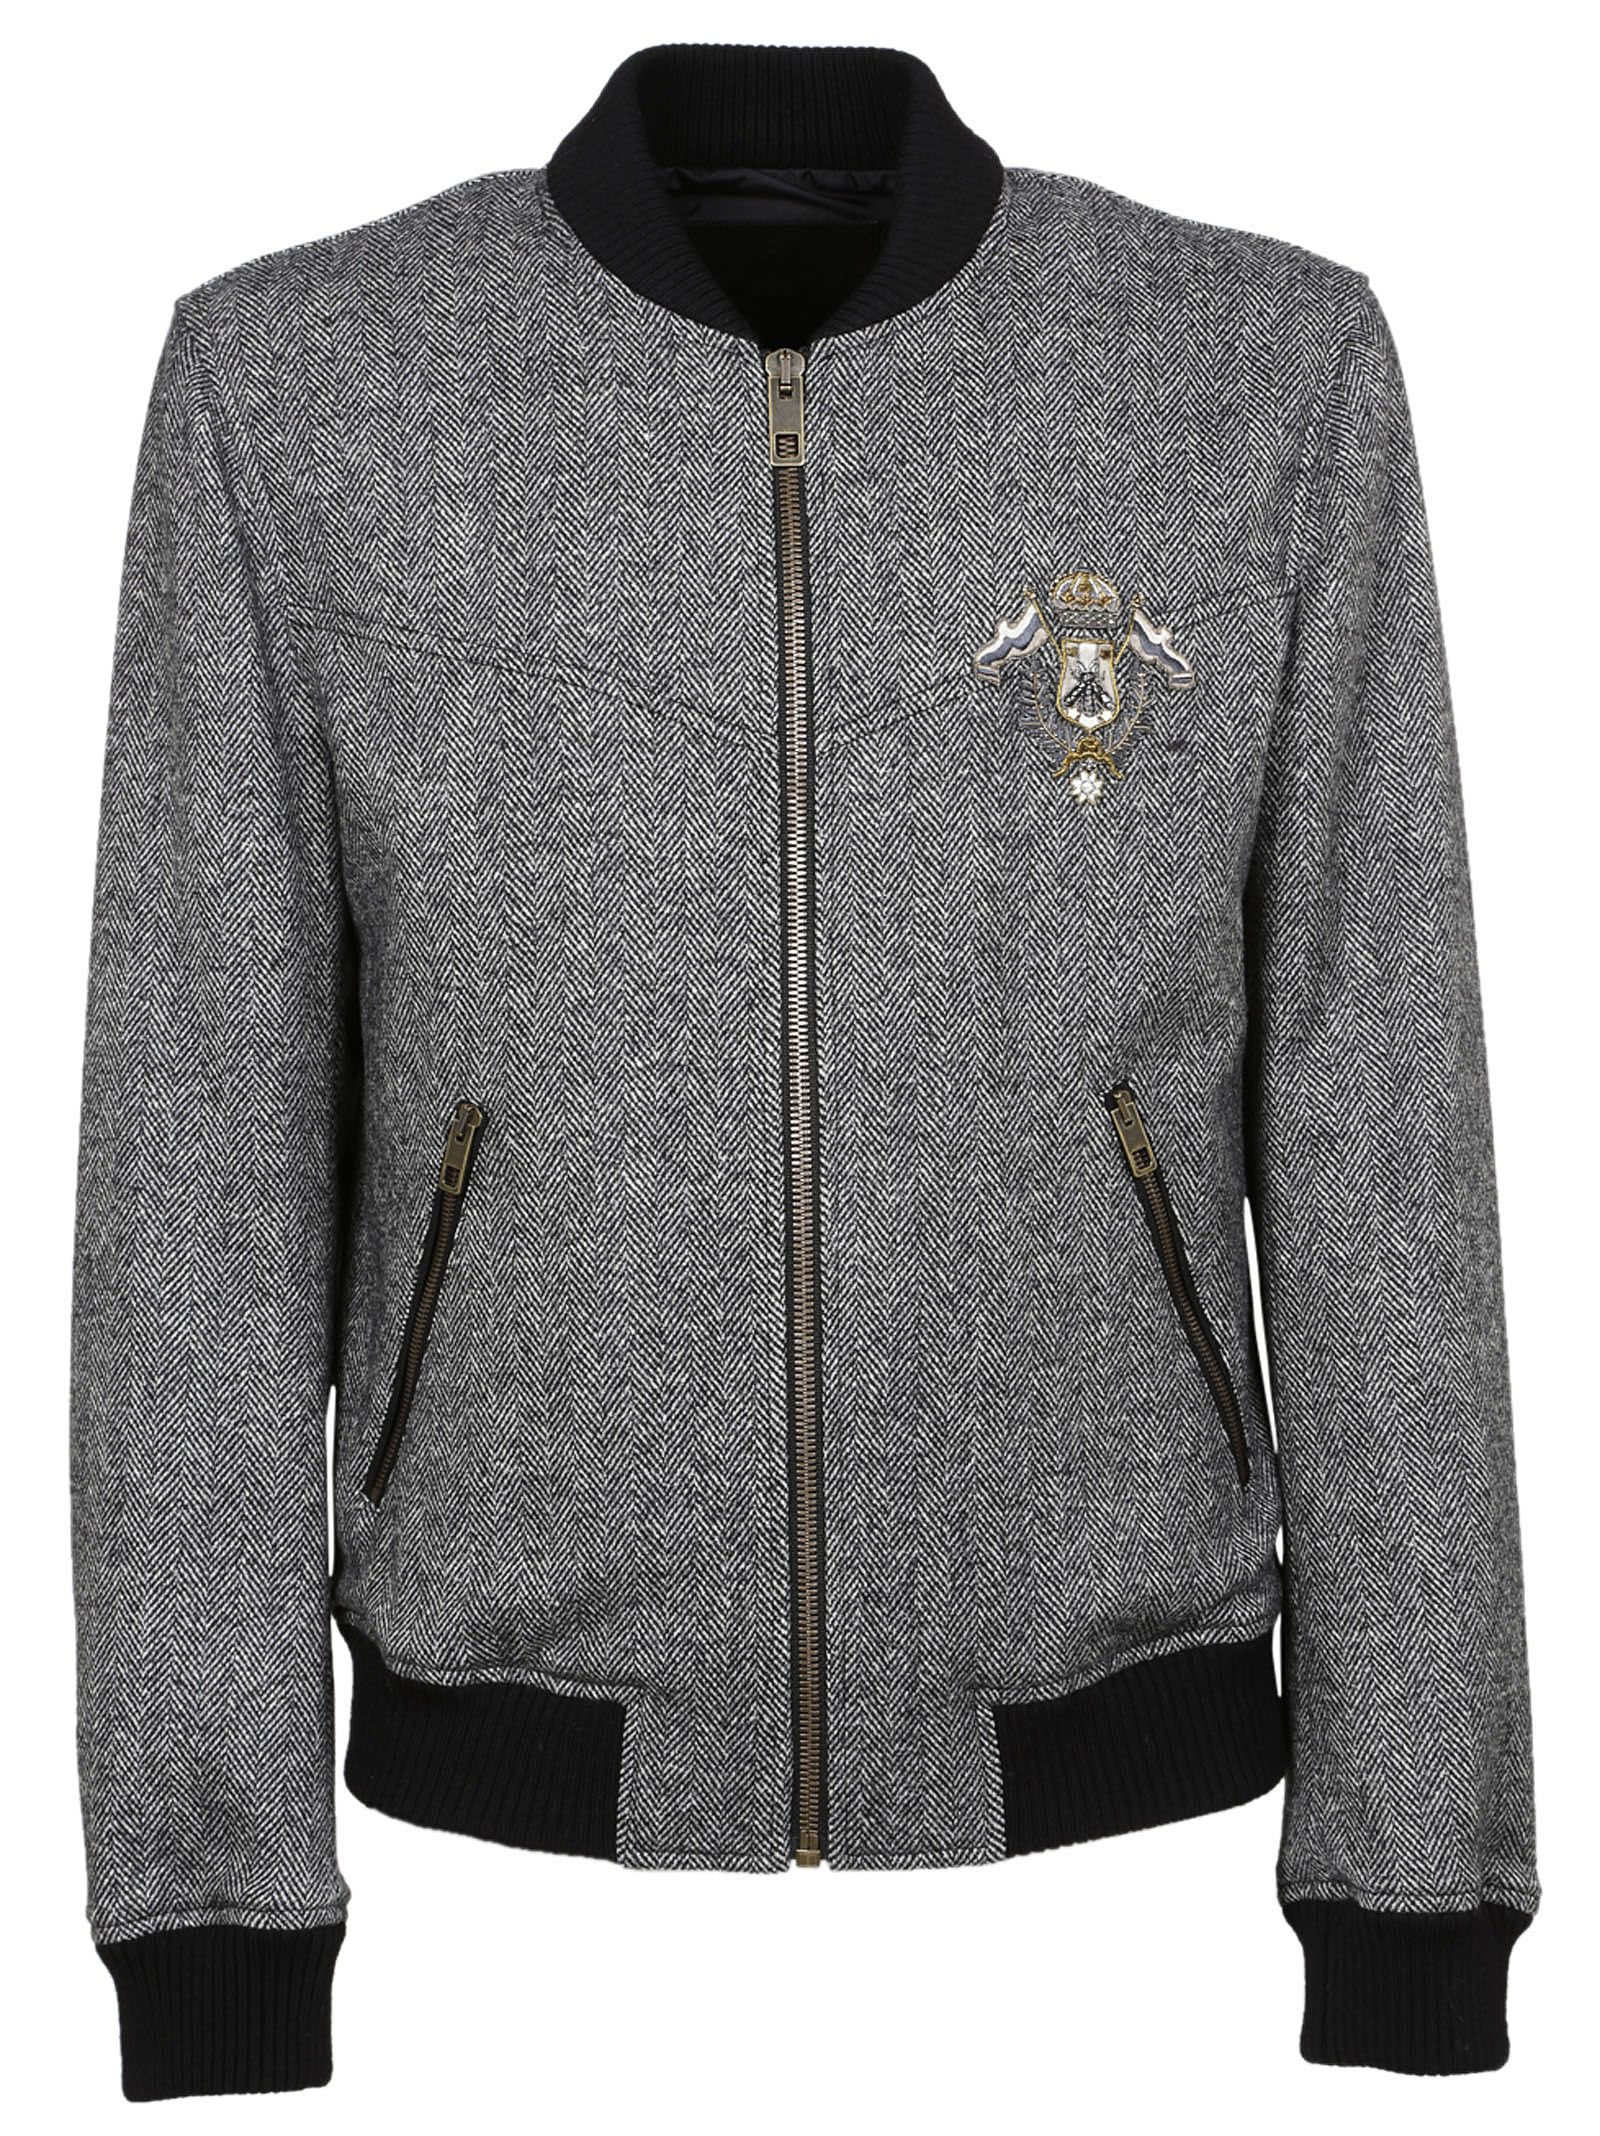 Dolce & Gabbana Patch Applique Tweed Bomber